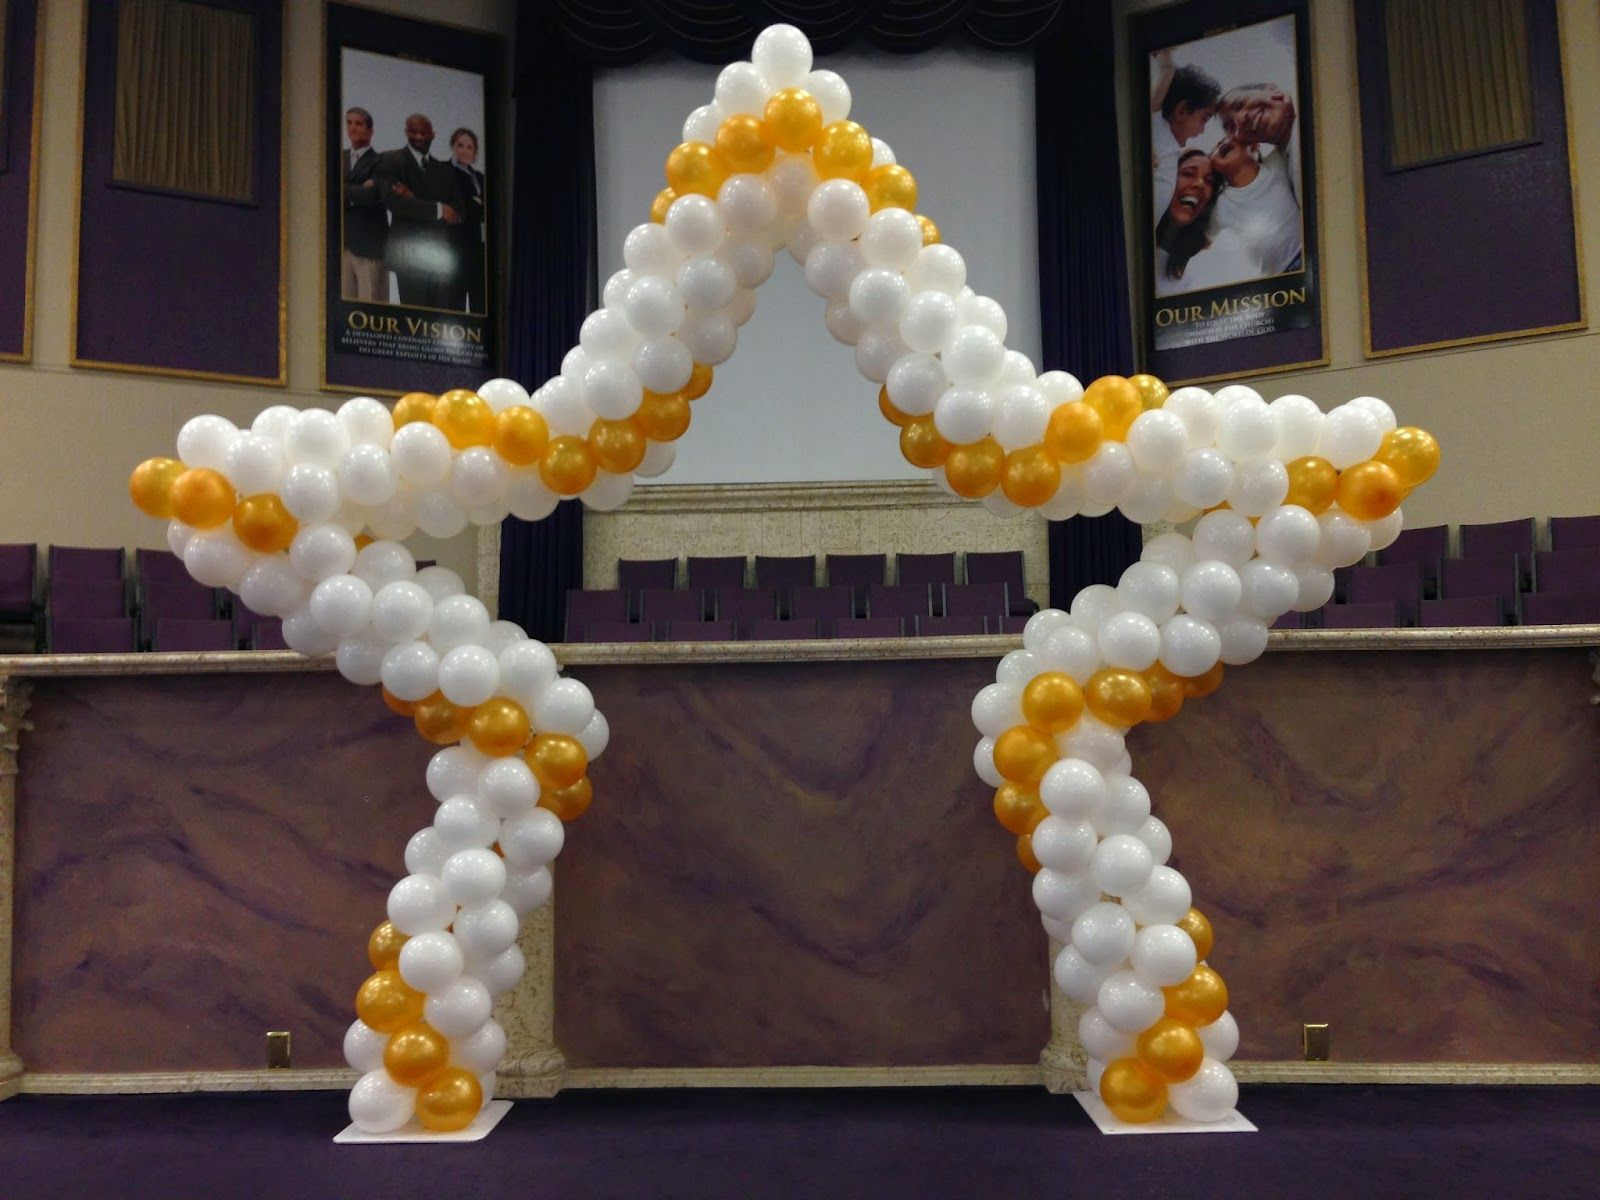 Stage or entrance star shape balloon arch balloon arch ideas pinterest arch balloon